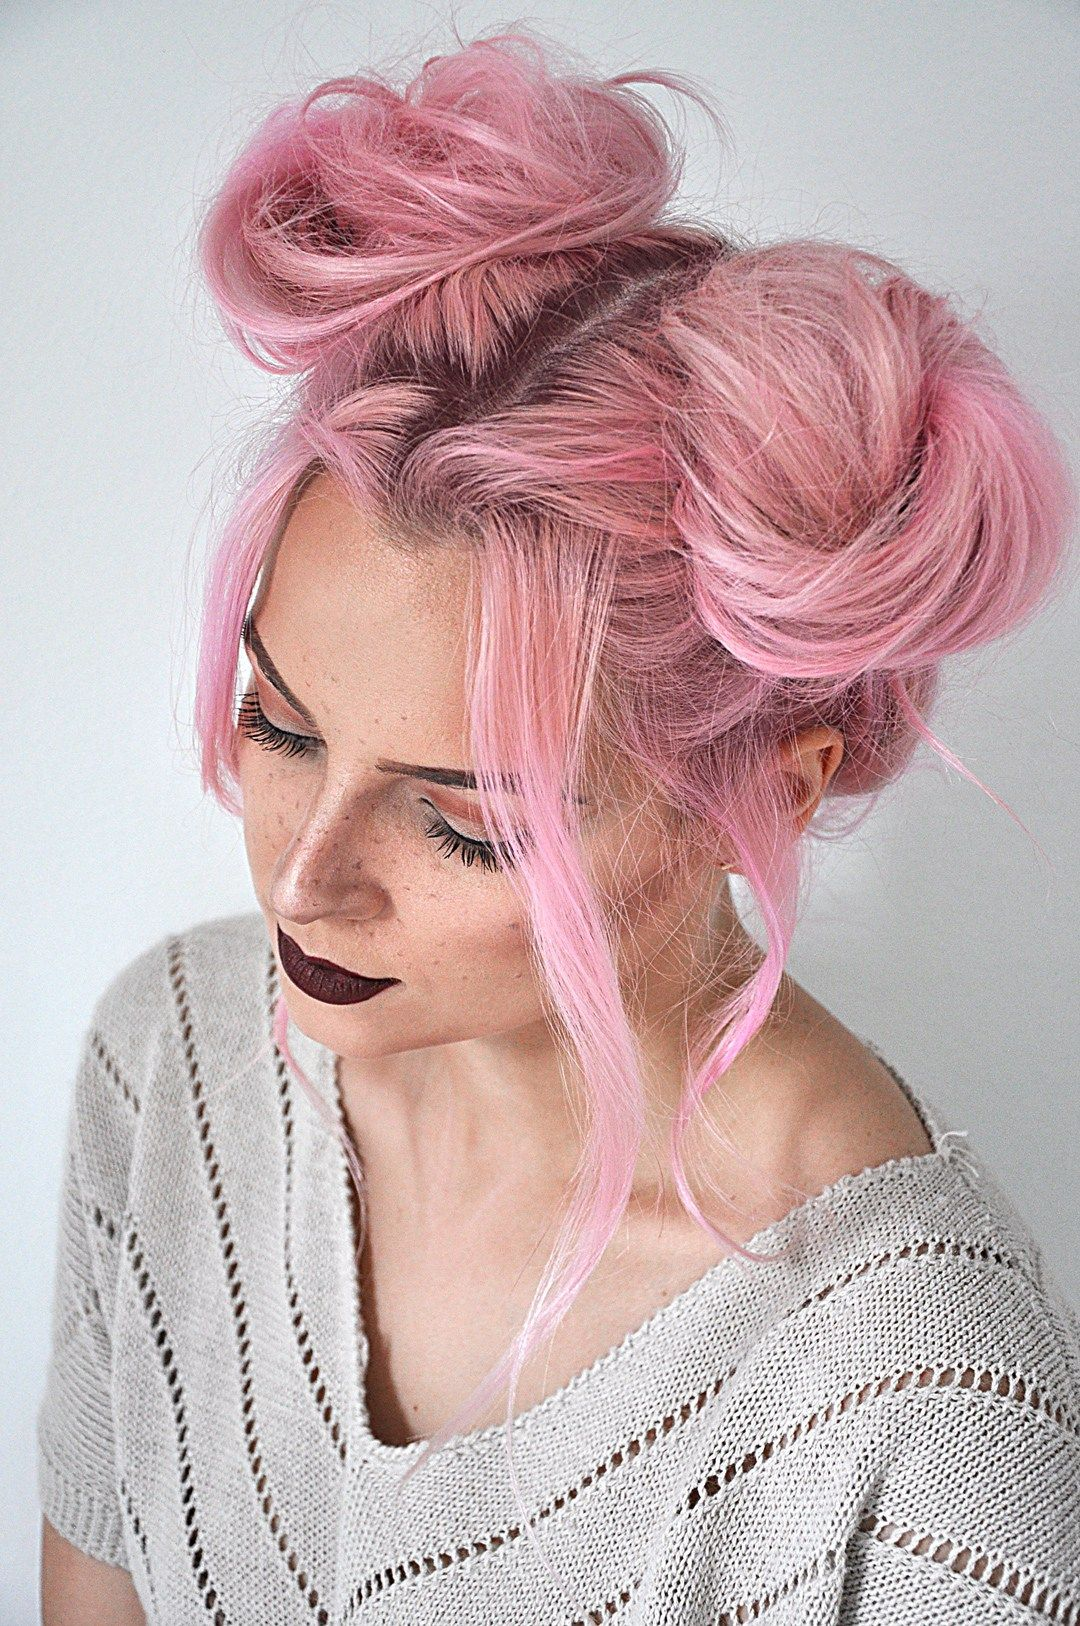 Quick And Easy Space Buns Hairstyle Tutorial Mayalamode Gothic Hairstyles Bun Hairstyles Pigtail Hairstyles